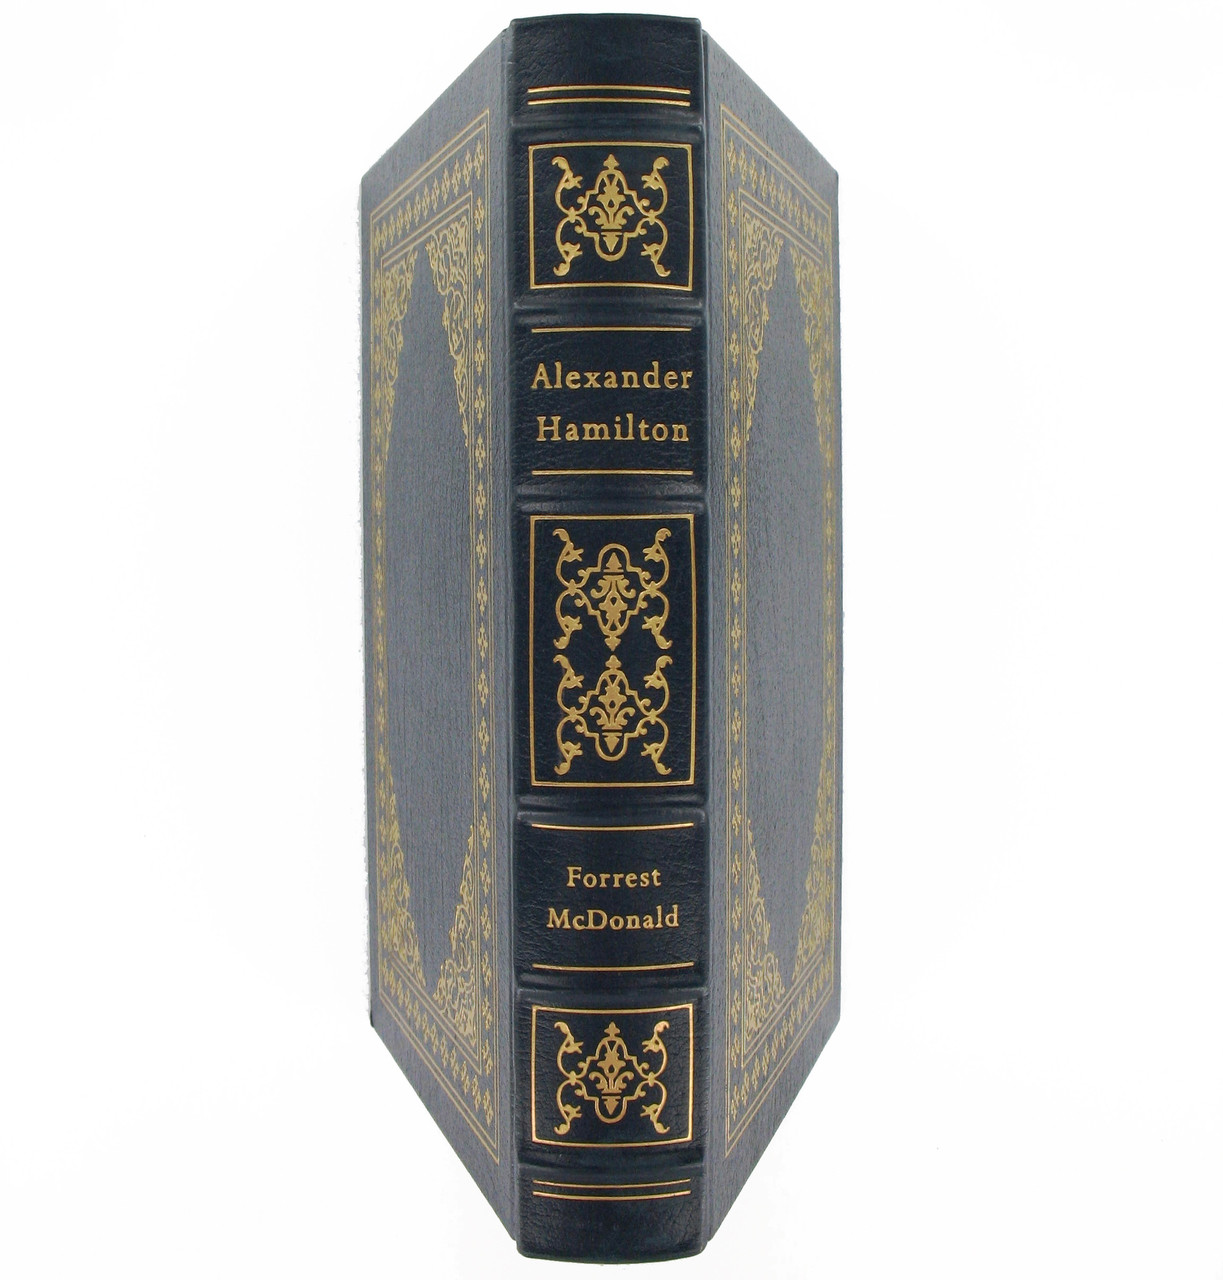 Alexander Hamilton by Forrest McDonald, Easton Press Great Lives